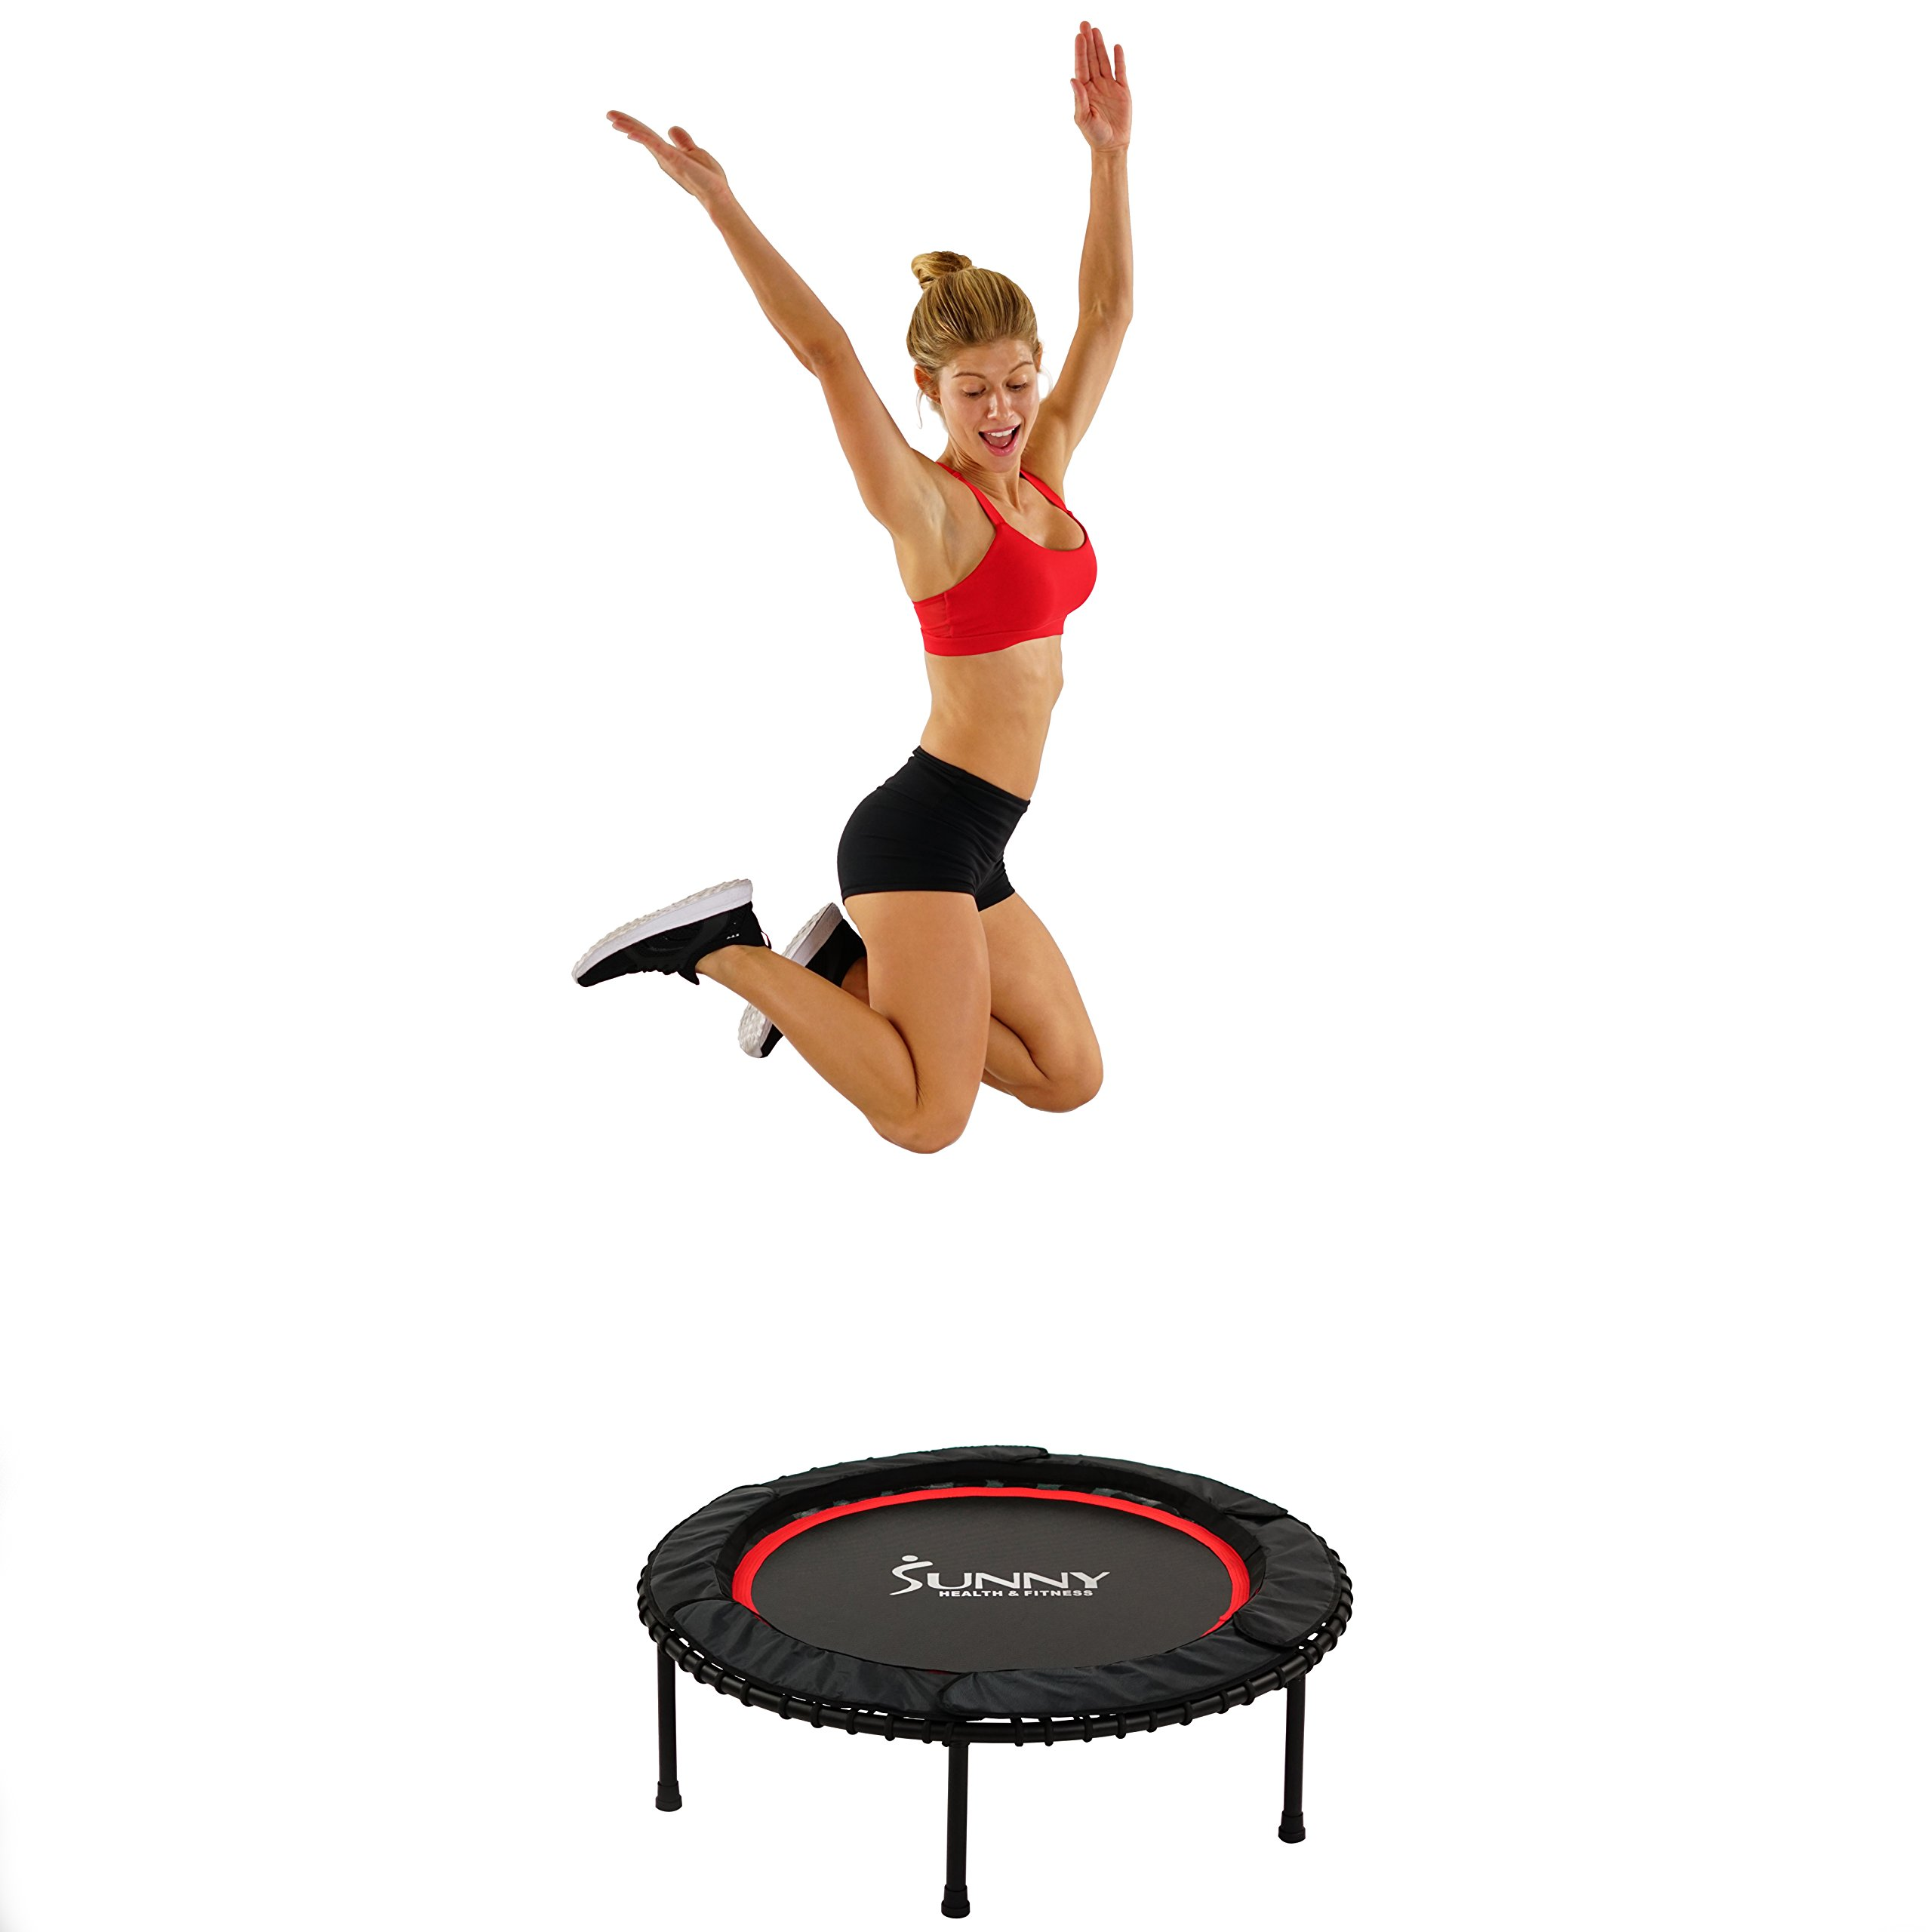 Sunny Health & Fitness 41'' Portable and Steel Framed Fitness Trampoline Rebounder with Premium High Bounce Bungee Cords by Sunny Health & Fitness